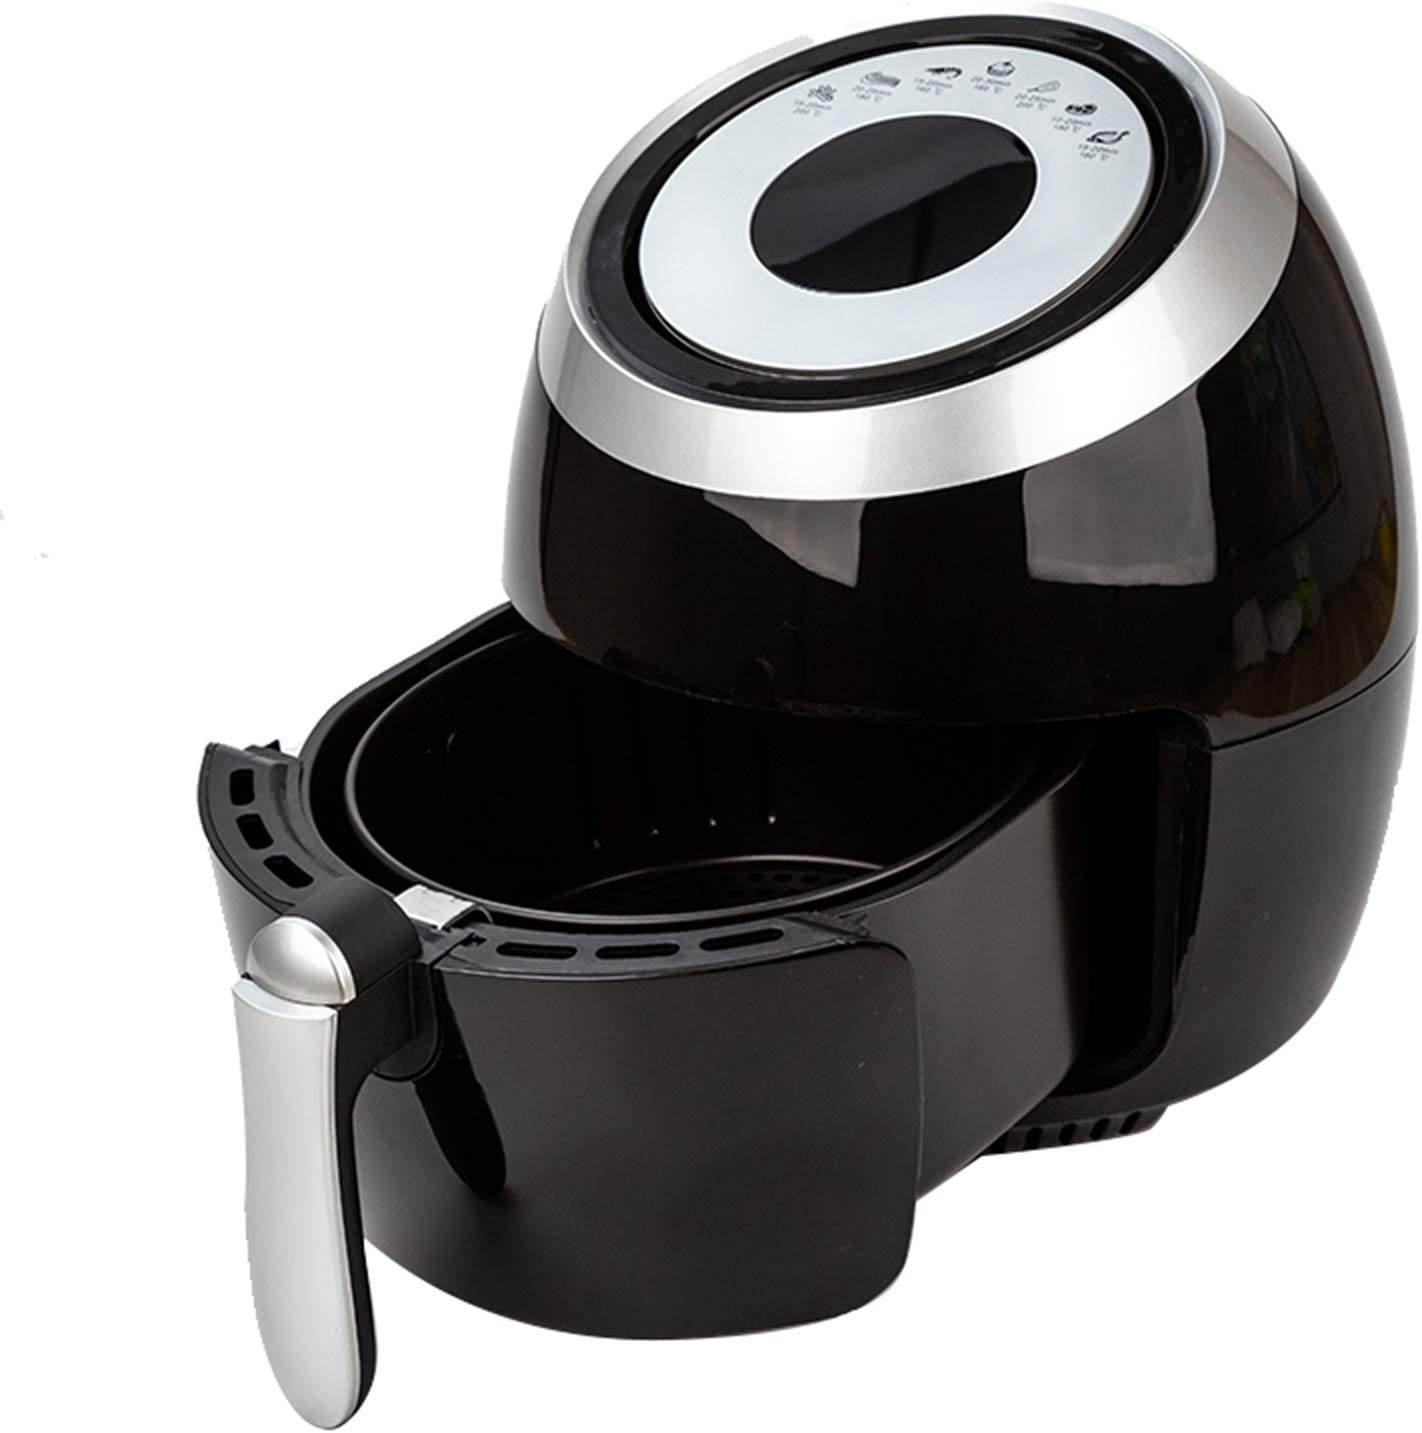 WWYM 5.5L 1,500W Air Fryer, Oil-Free Healthy Non-Stick, with 7 Pre-Set Menu, Touchscreen Panel, Temperature Control, Multi-Function Fryer